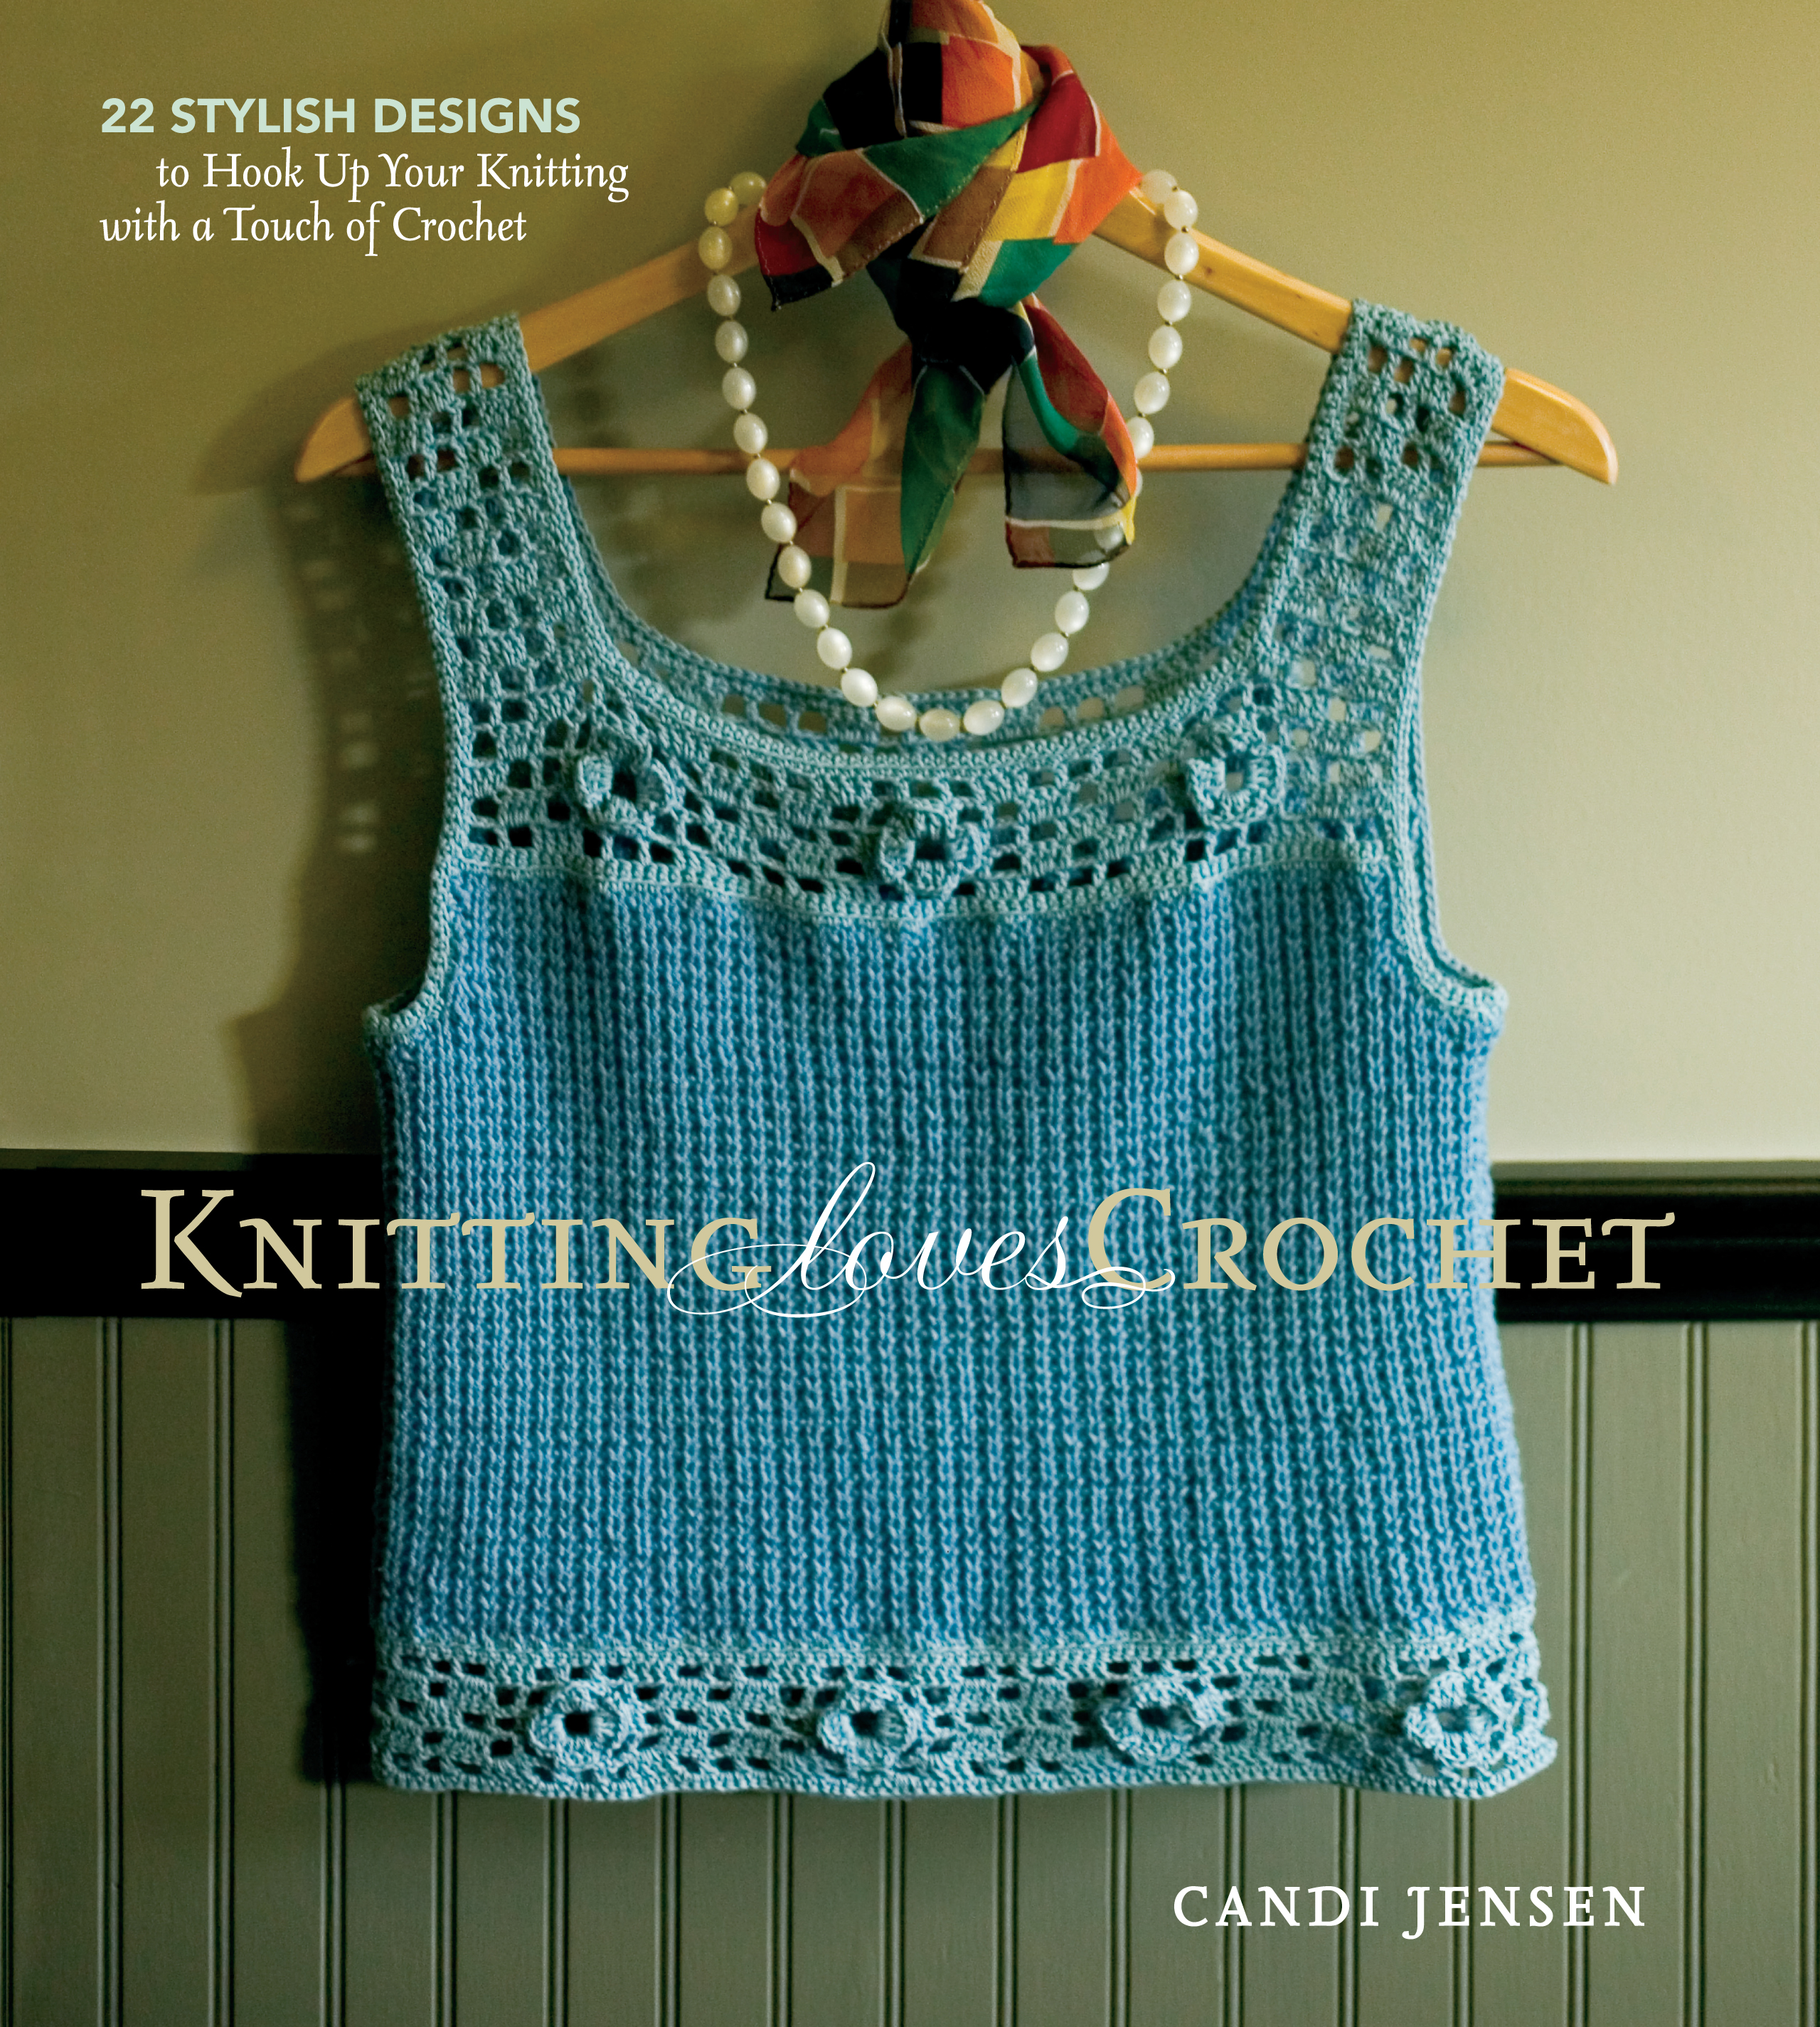 Knitting Loves Crochet 22 Stylish Designs to Hook Up Your Knitting with a Touch of Crochet - Candi Jensen